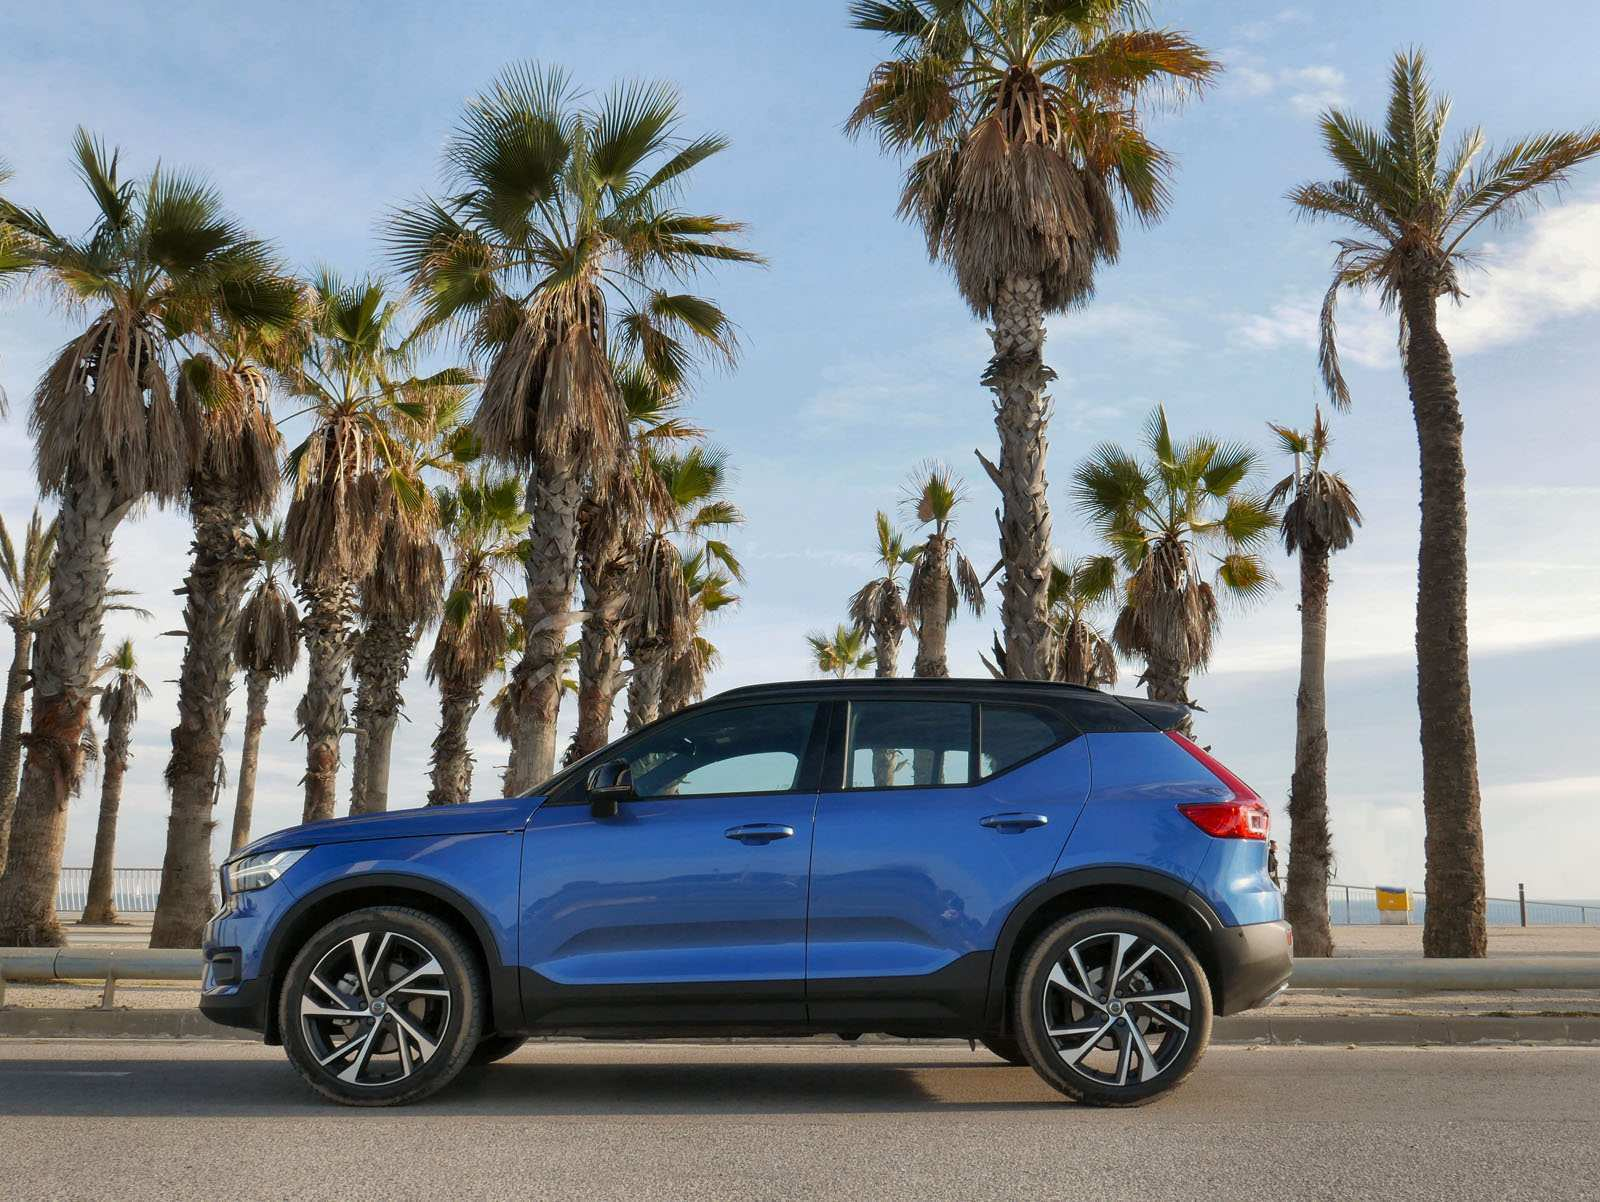 30 Gallery of Volvo 2019 Xc40 Review Price for Volvo 2019 Xc40 Review